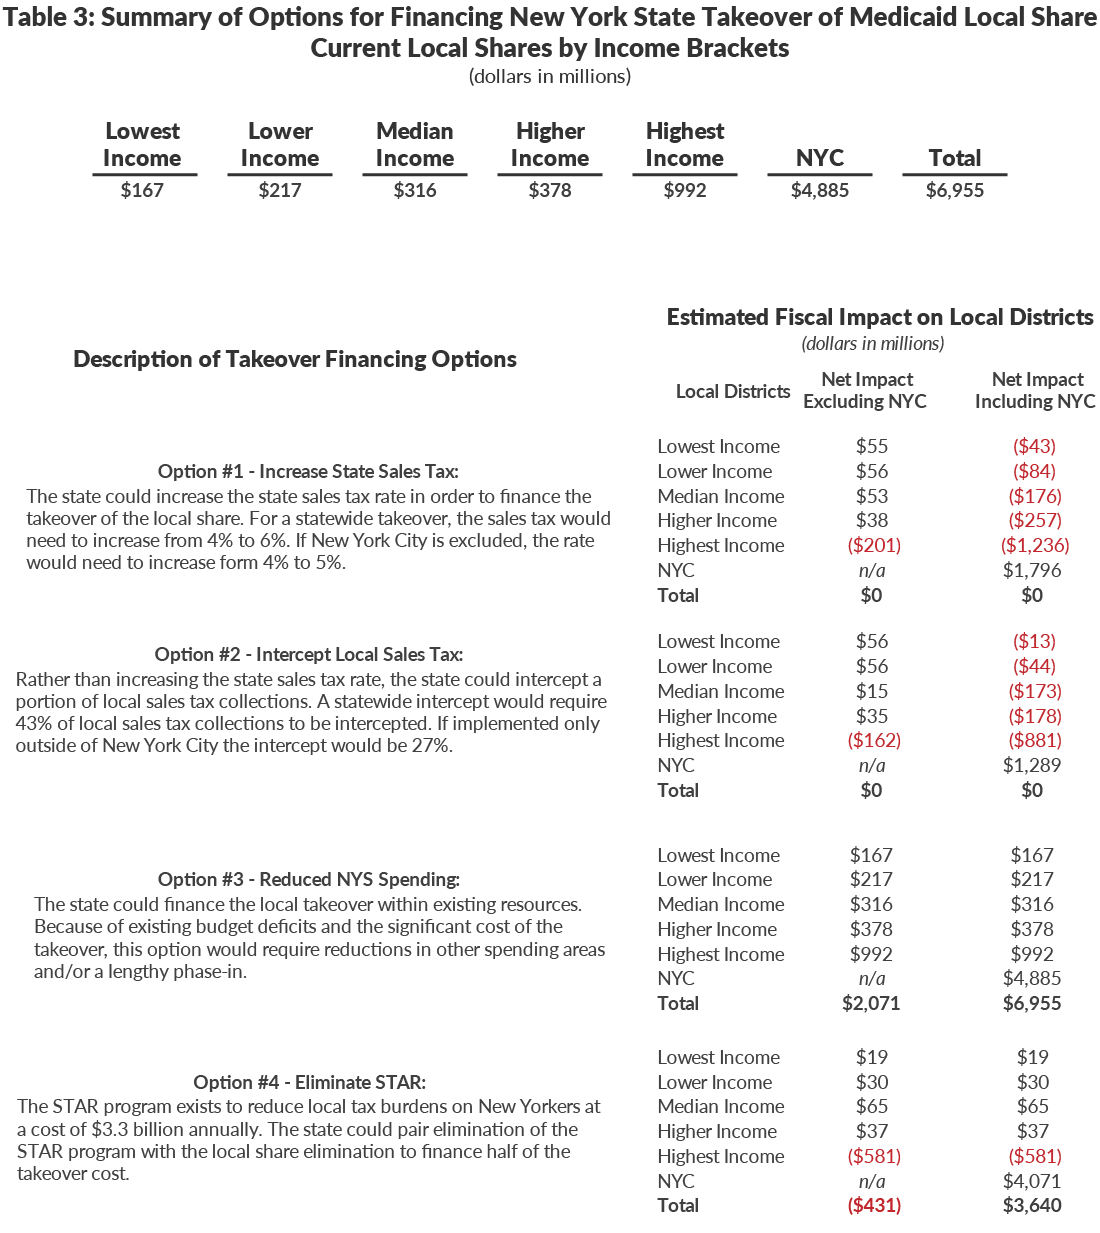 Table 3: Summary of Options for Financing New York State Takeover of Medicaid Local Share